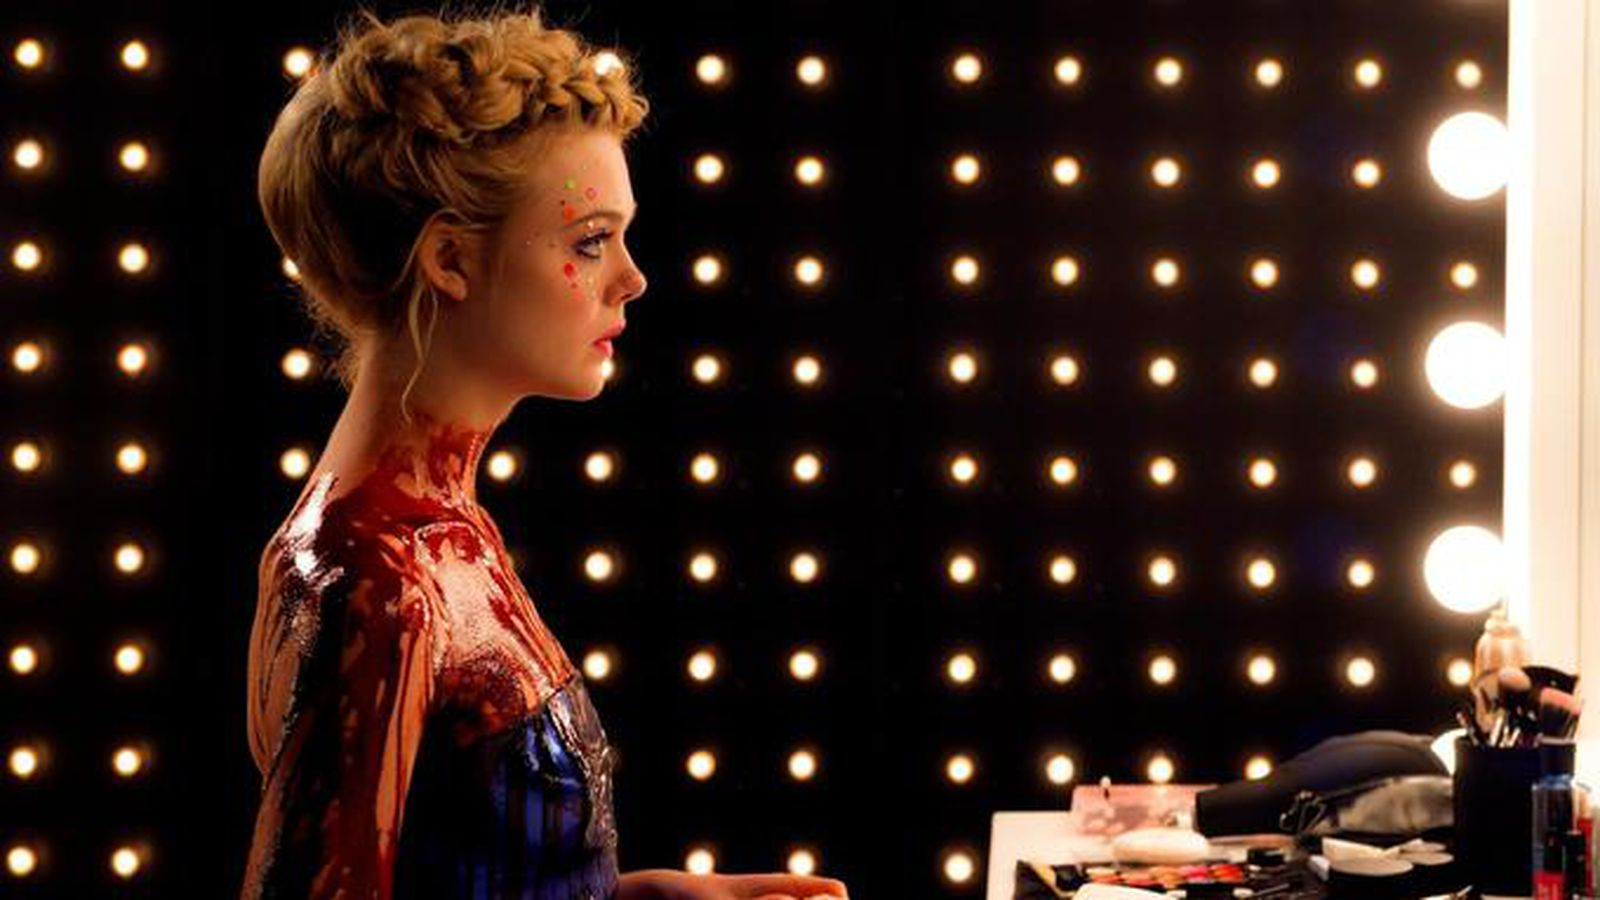 Jesse (Elle Fanning) looks into the mirror with lights surrounding her in The Neon Demon